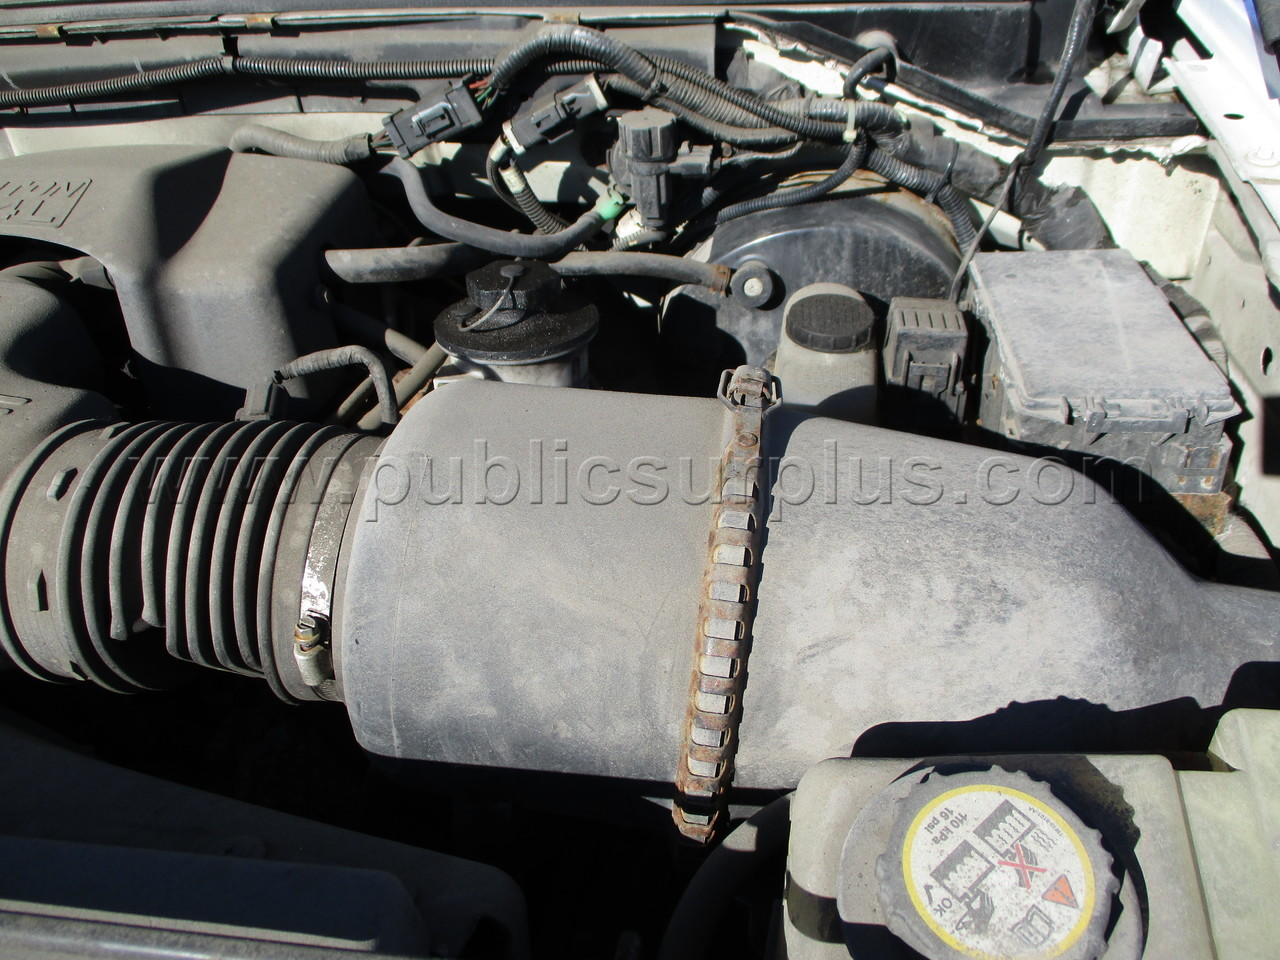 #2244274 - 2004 FORD F150 PICKUP TRUCK - CNG (4WD)